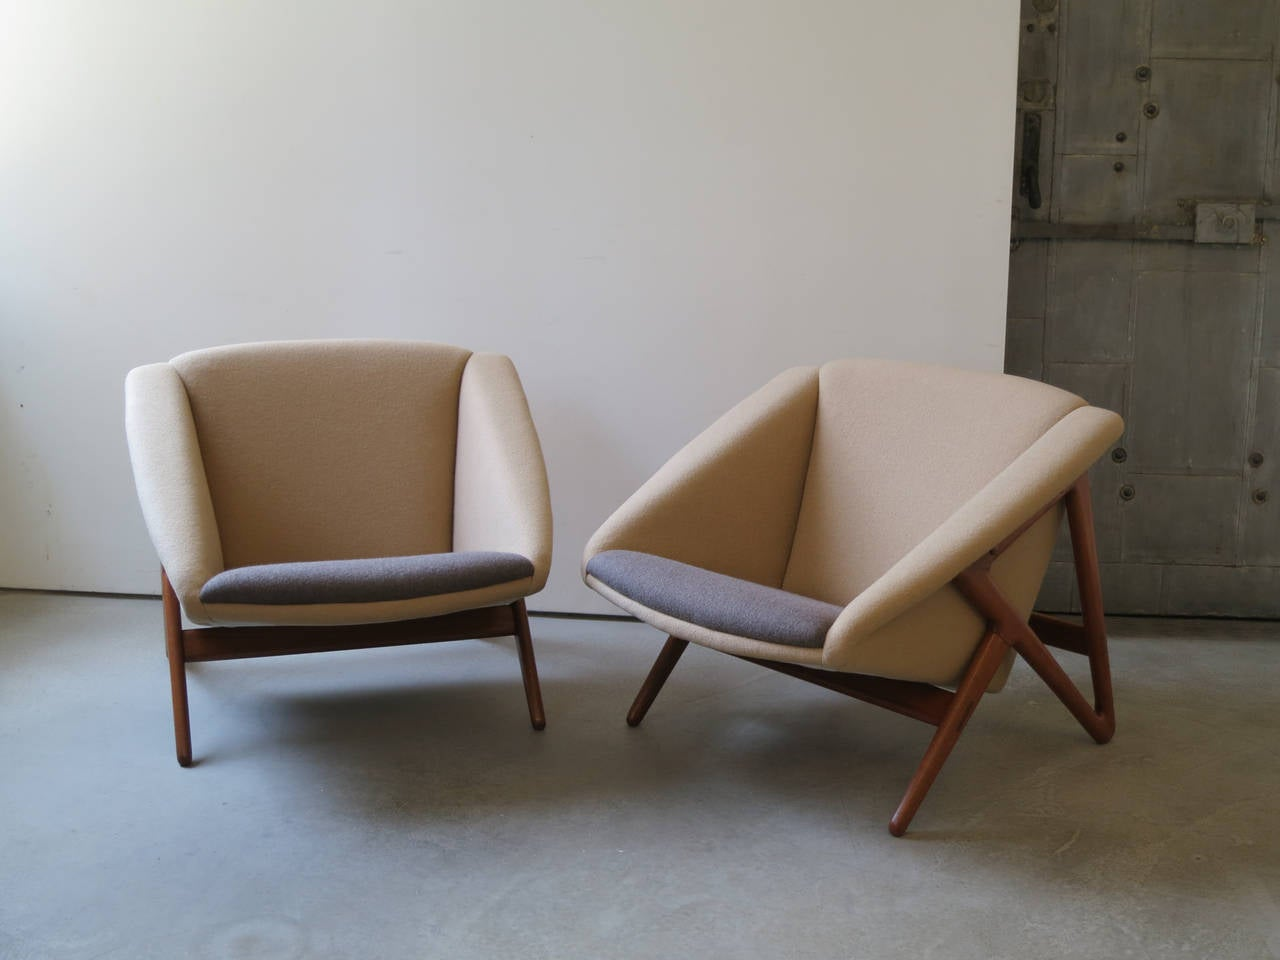 """Offered by Vance Trimble, Pair of """"Tipvogn"""" Chairs by H. Brockmann Petersen.  Designed by H. Brockmann Petersen in 1953.   Made by cabinetmaker Louis G. Thiersen & Søn, Copenhagen.   Teak legs, upholstered in Holland & Sherry camel and warm"""